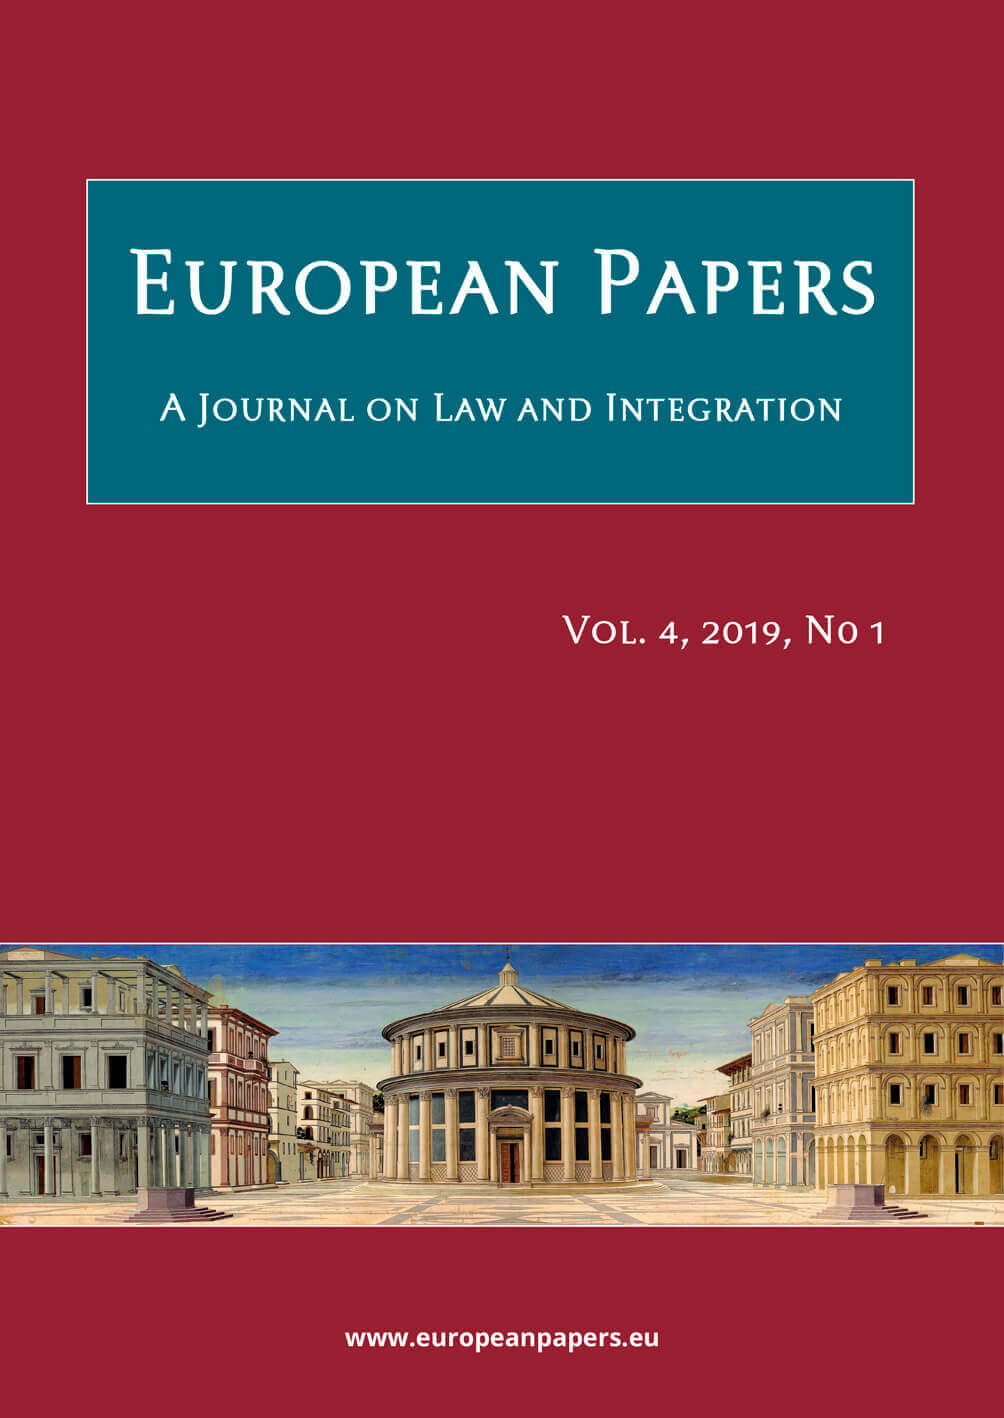 European Papers - Vol. 4, 2019, No 1